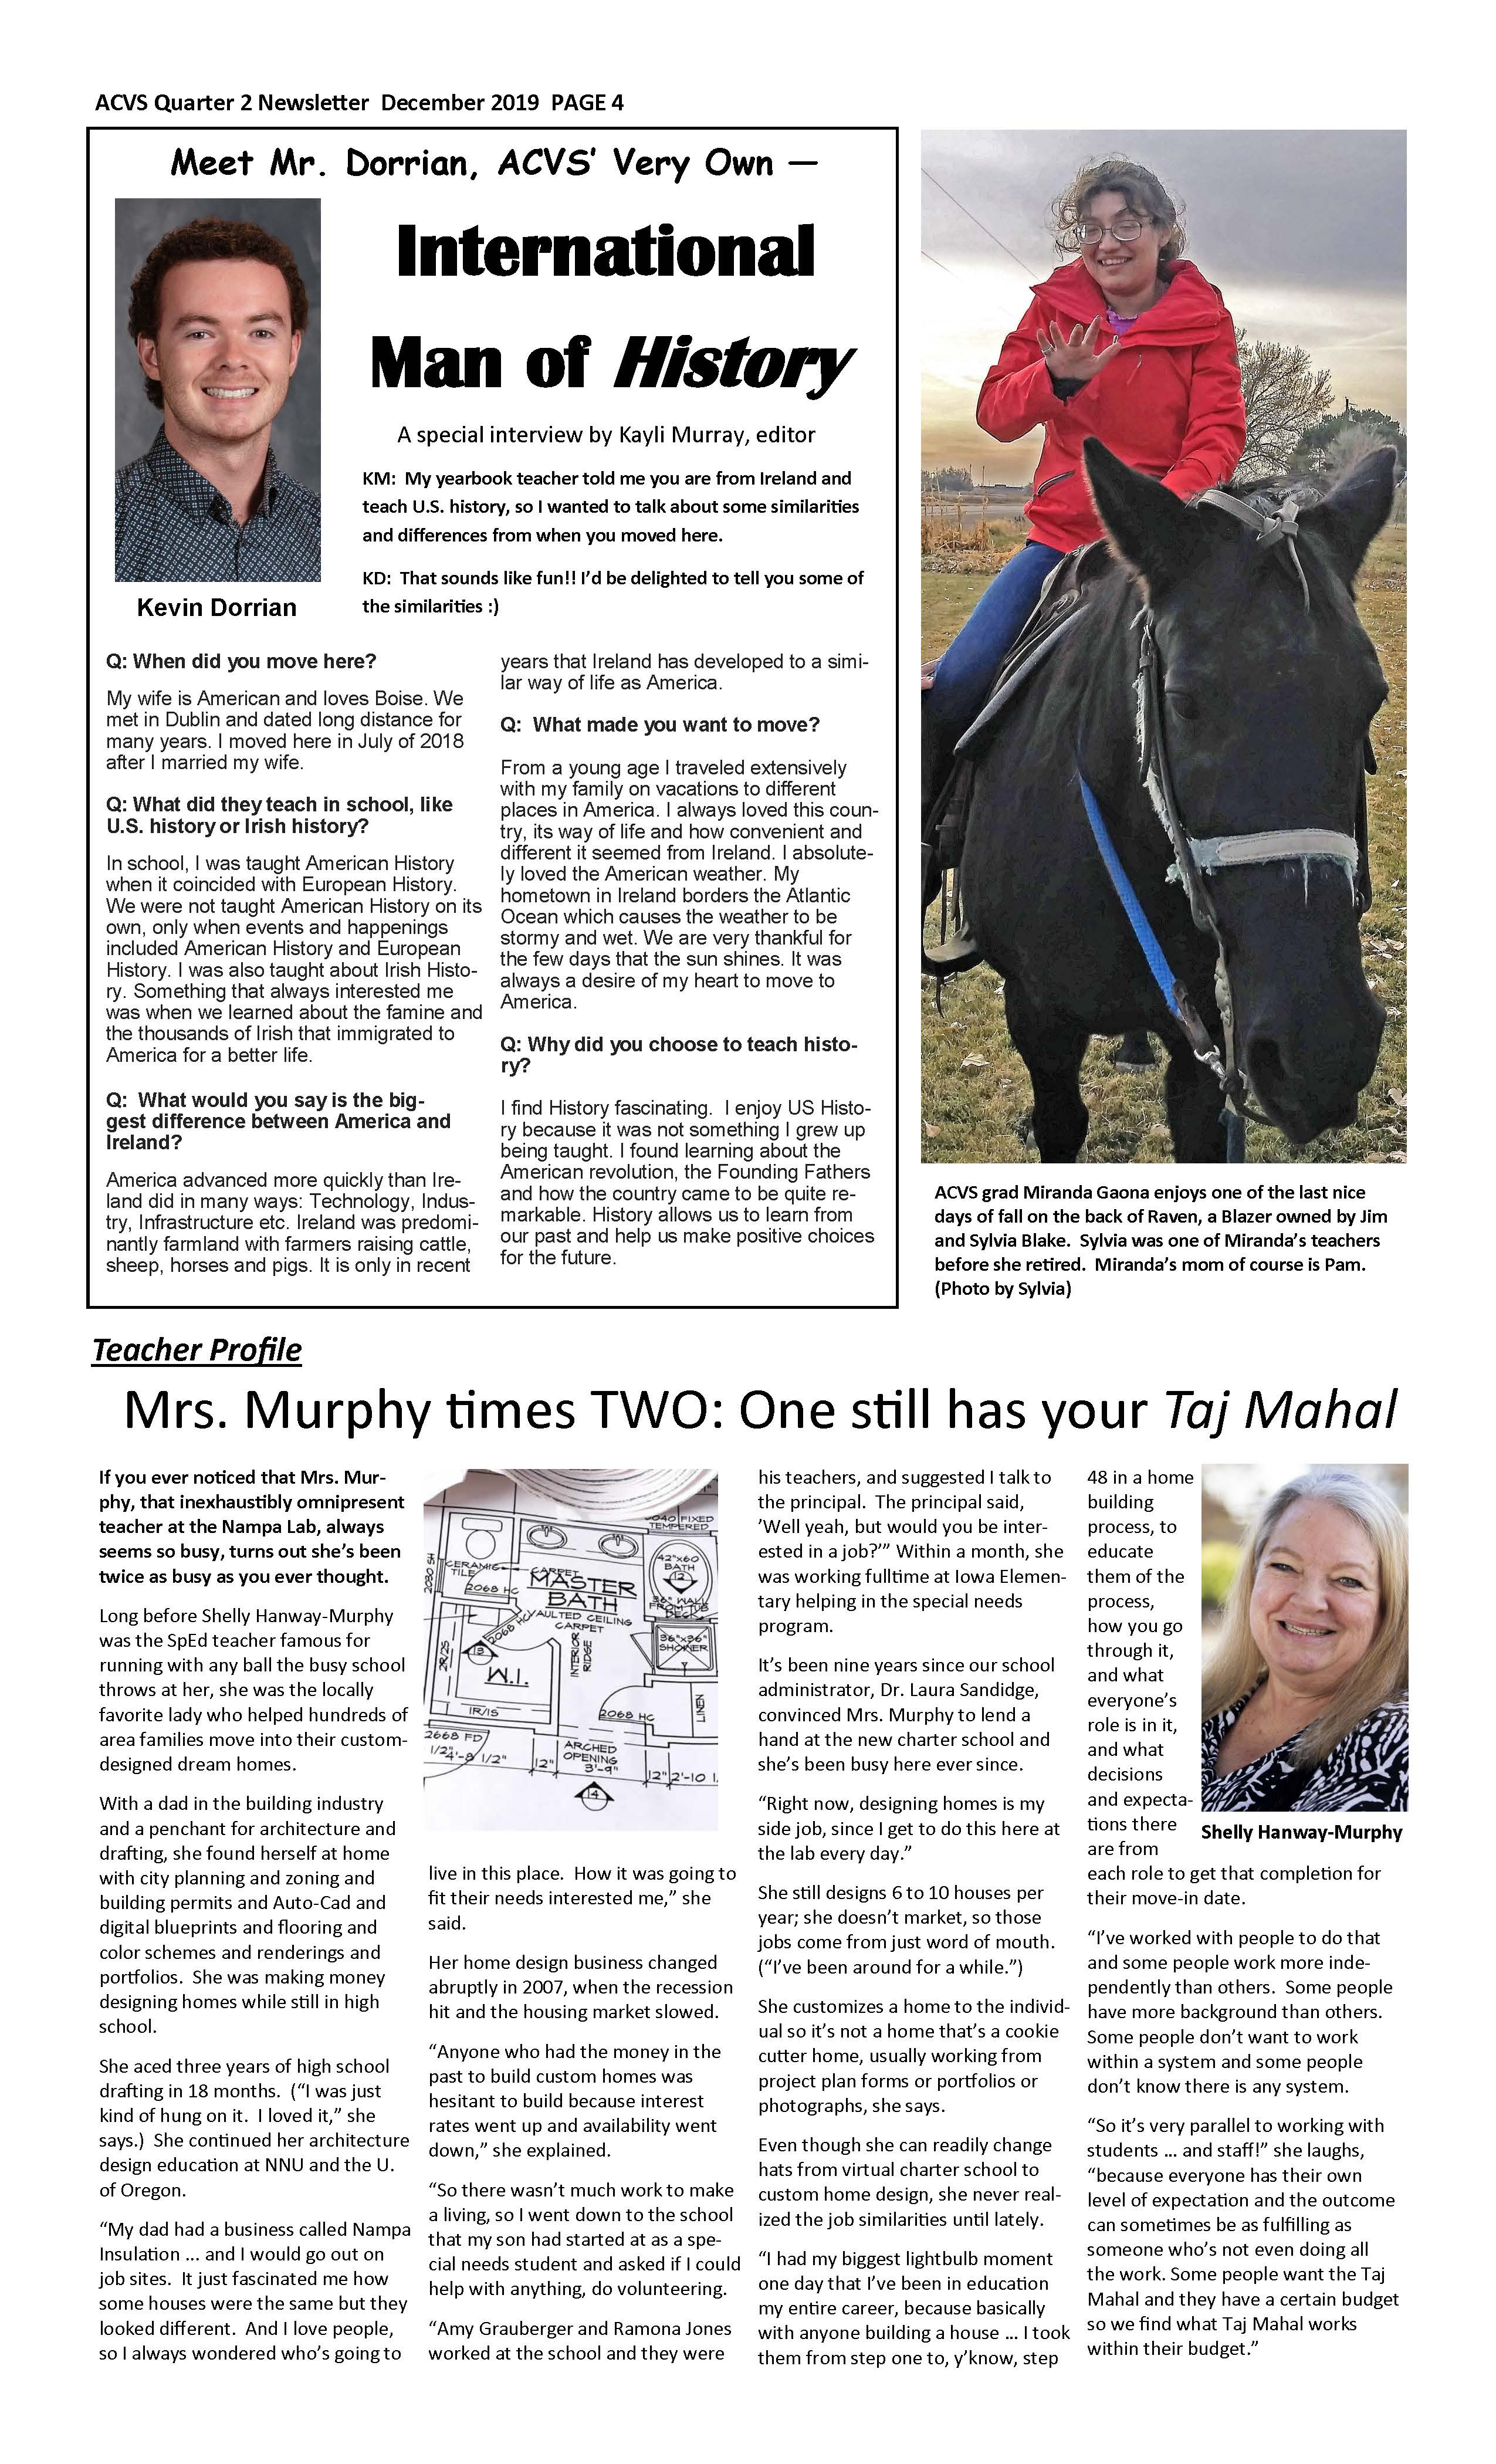 ACVS News Letter Page 4